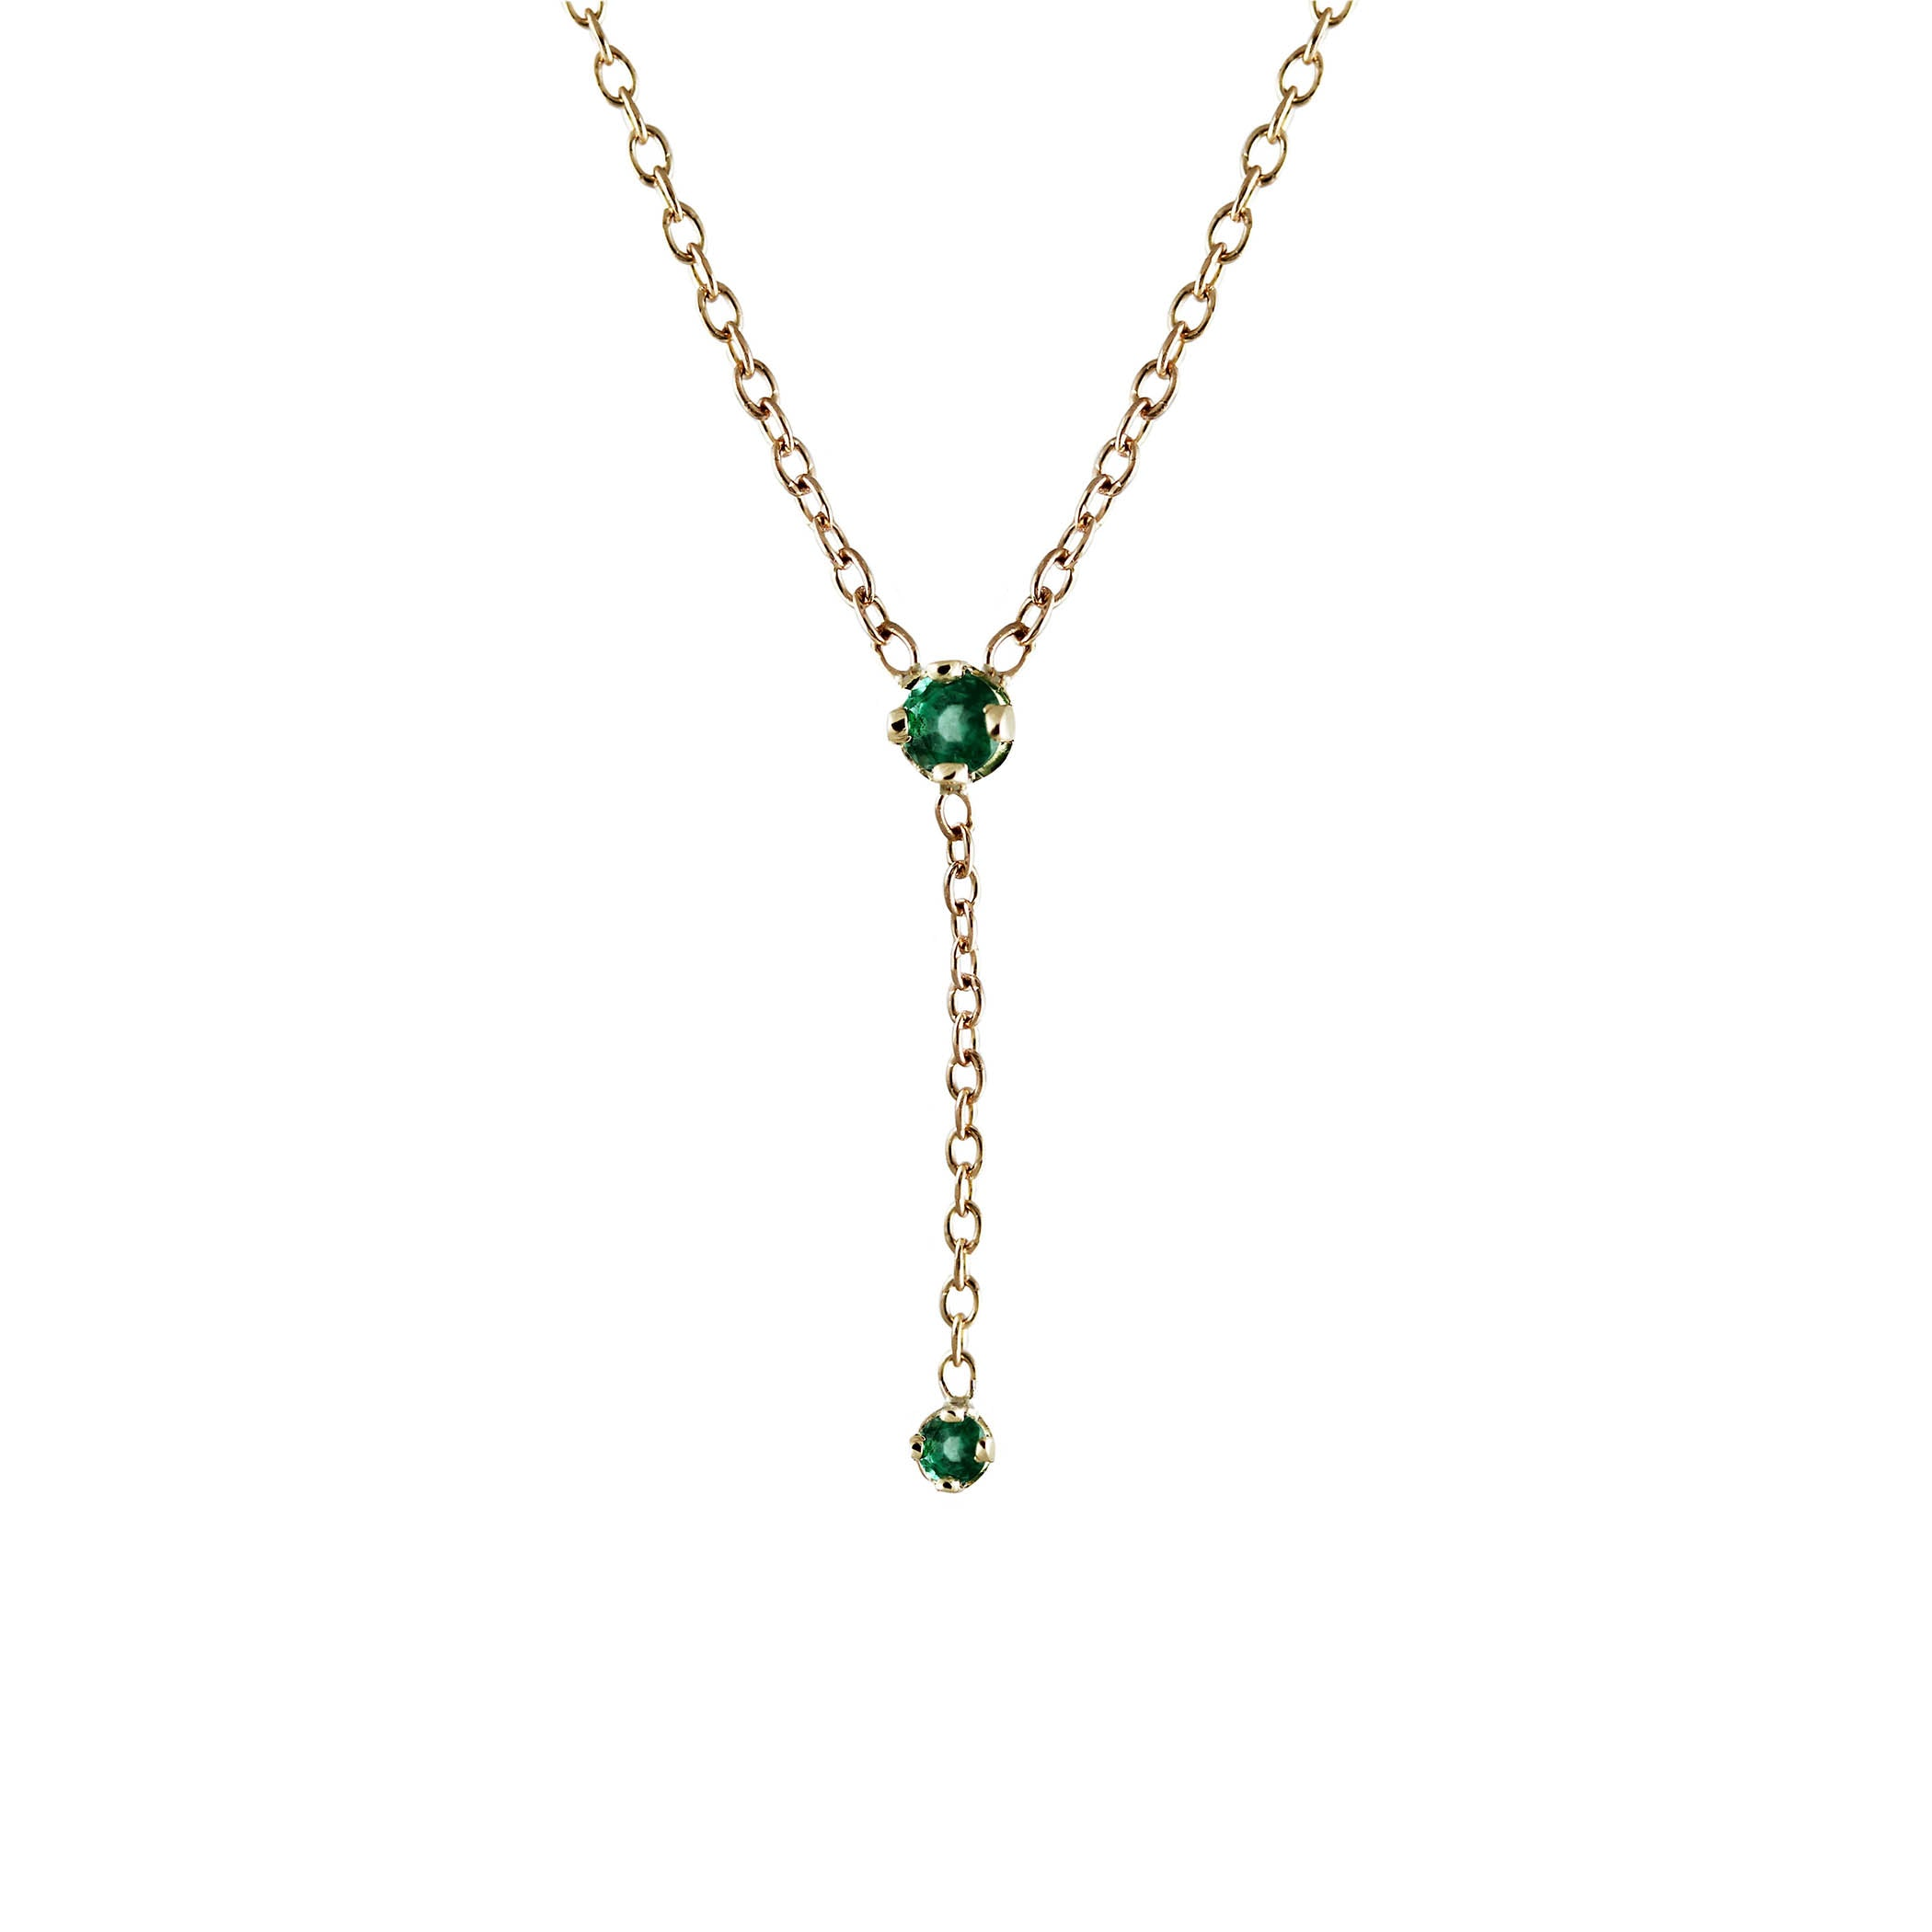 emerald necklace pendant wendy cut stone necklaces chokers products nichol tourmaline collections